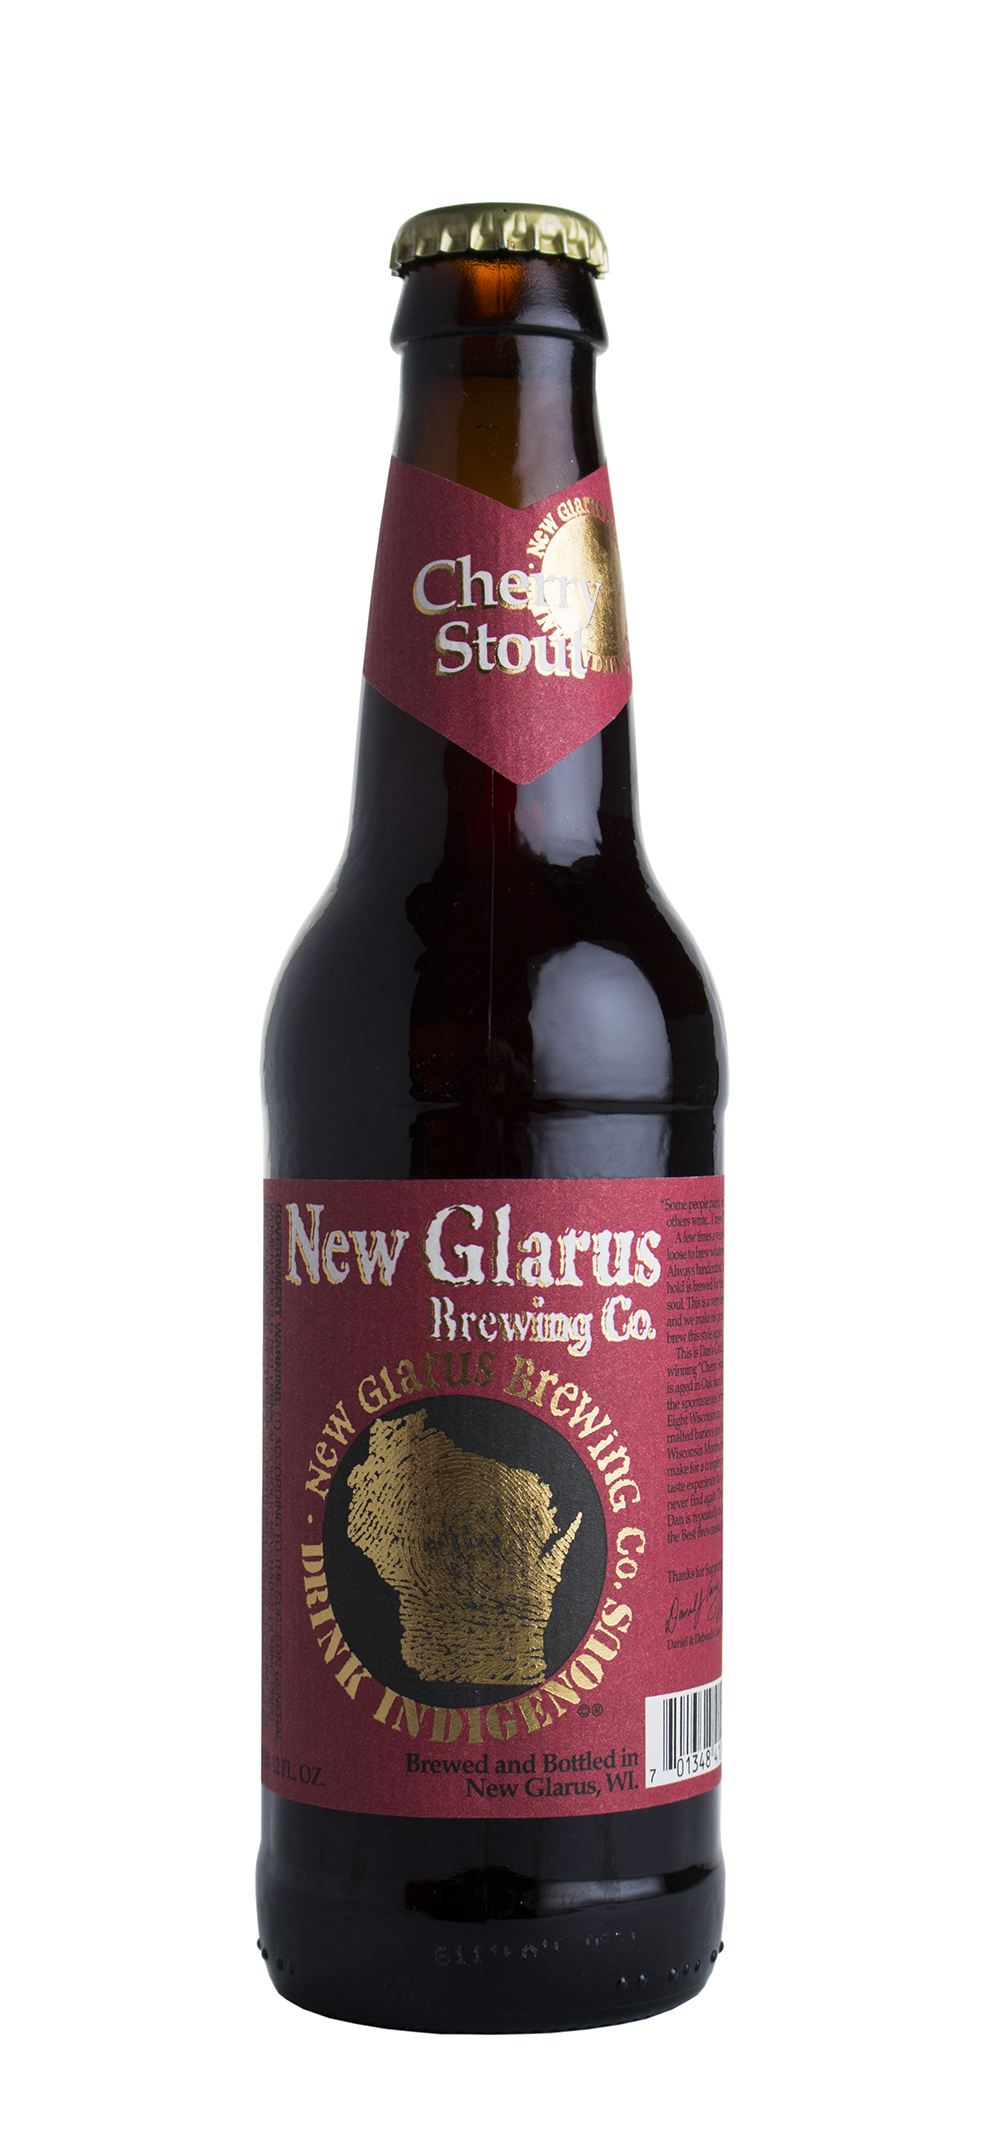 New Glarus Brewing Company's Cherry Stout // Photo by Aaron Job, The Growler